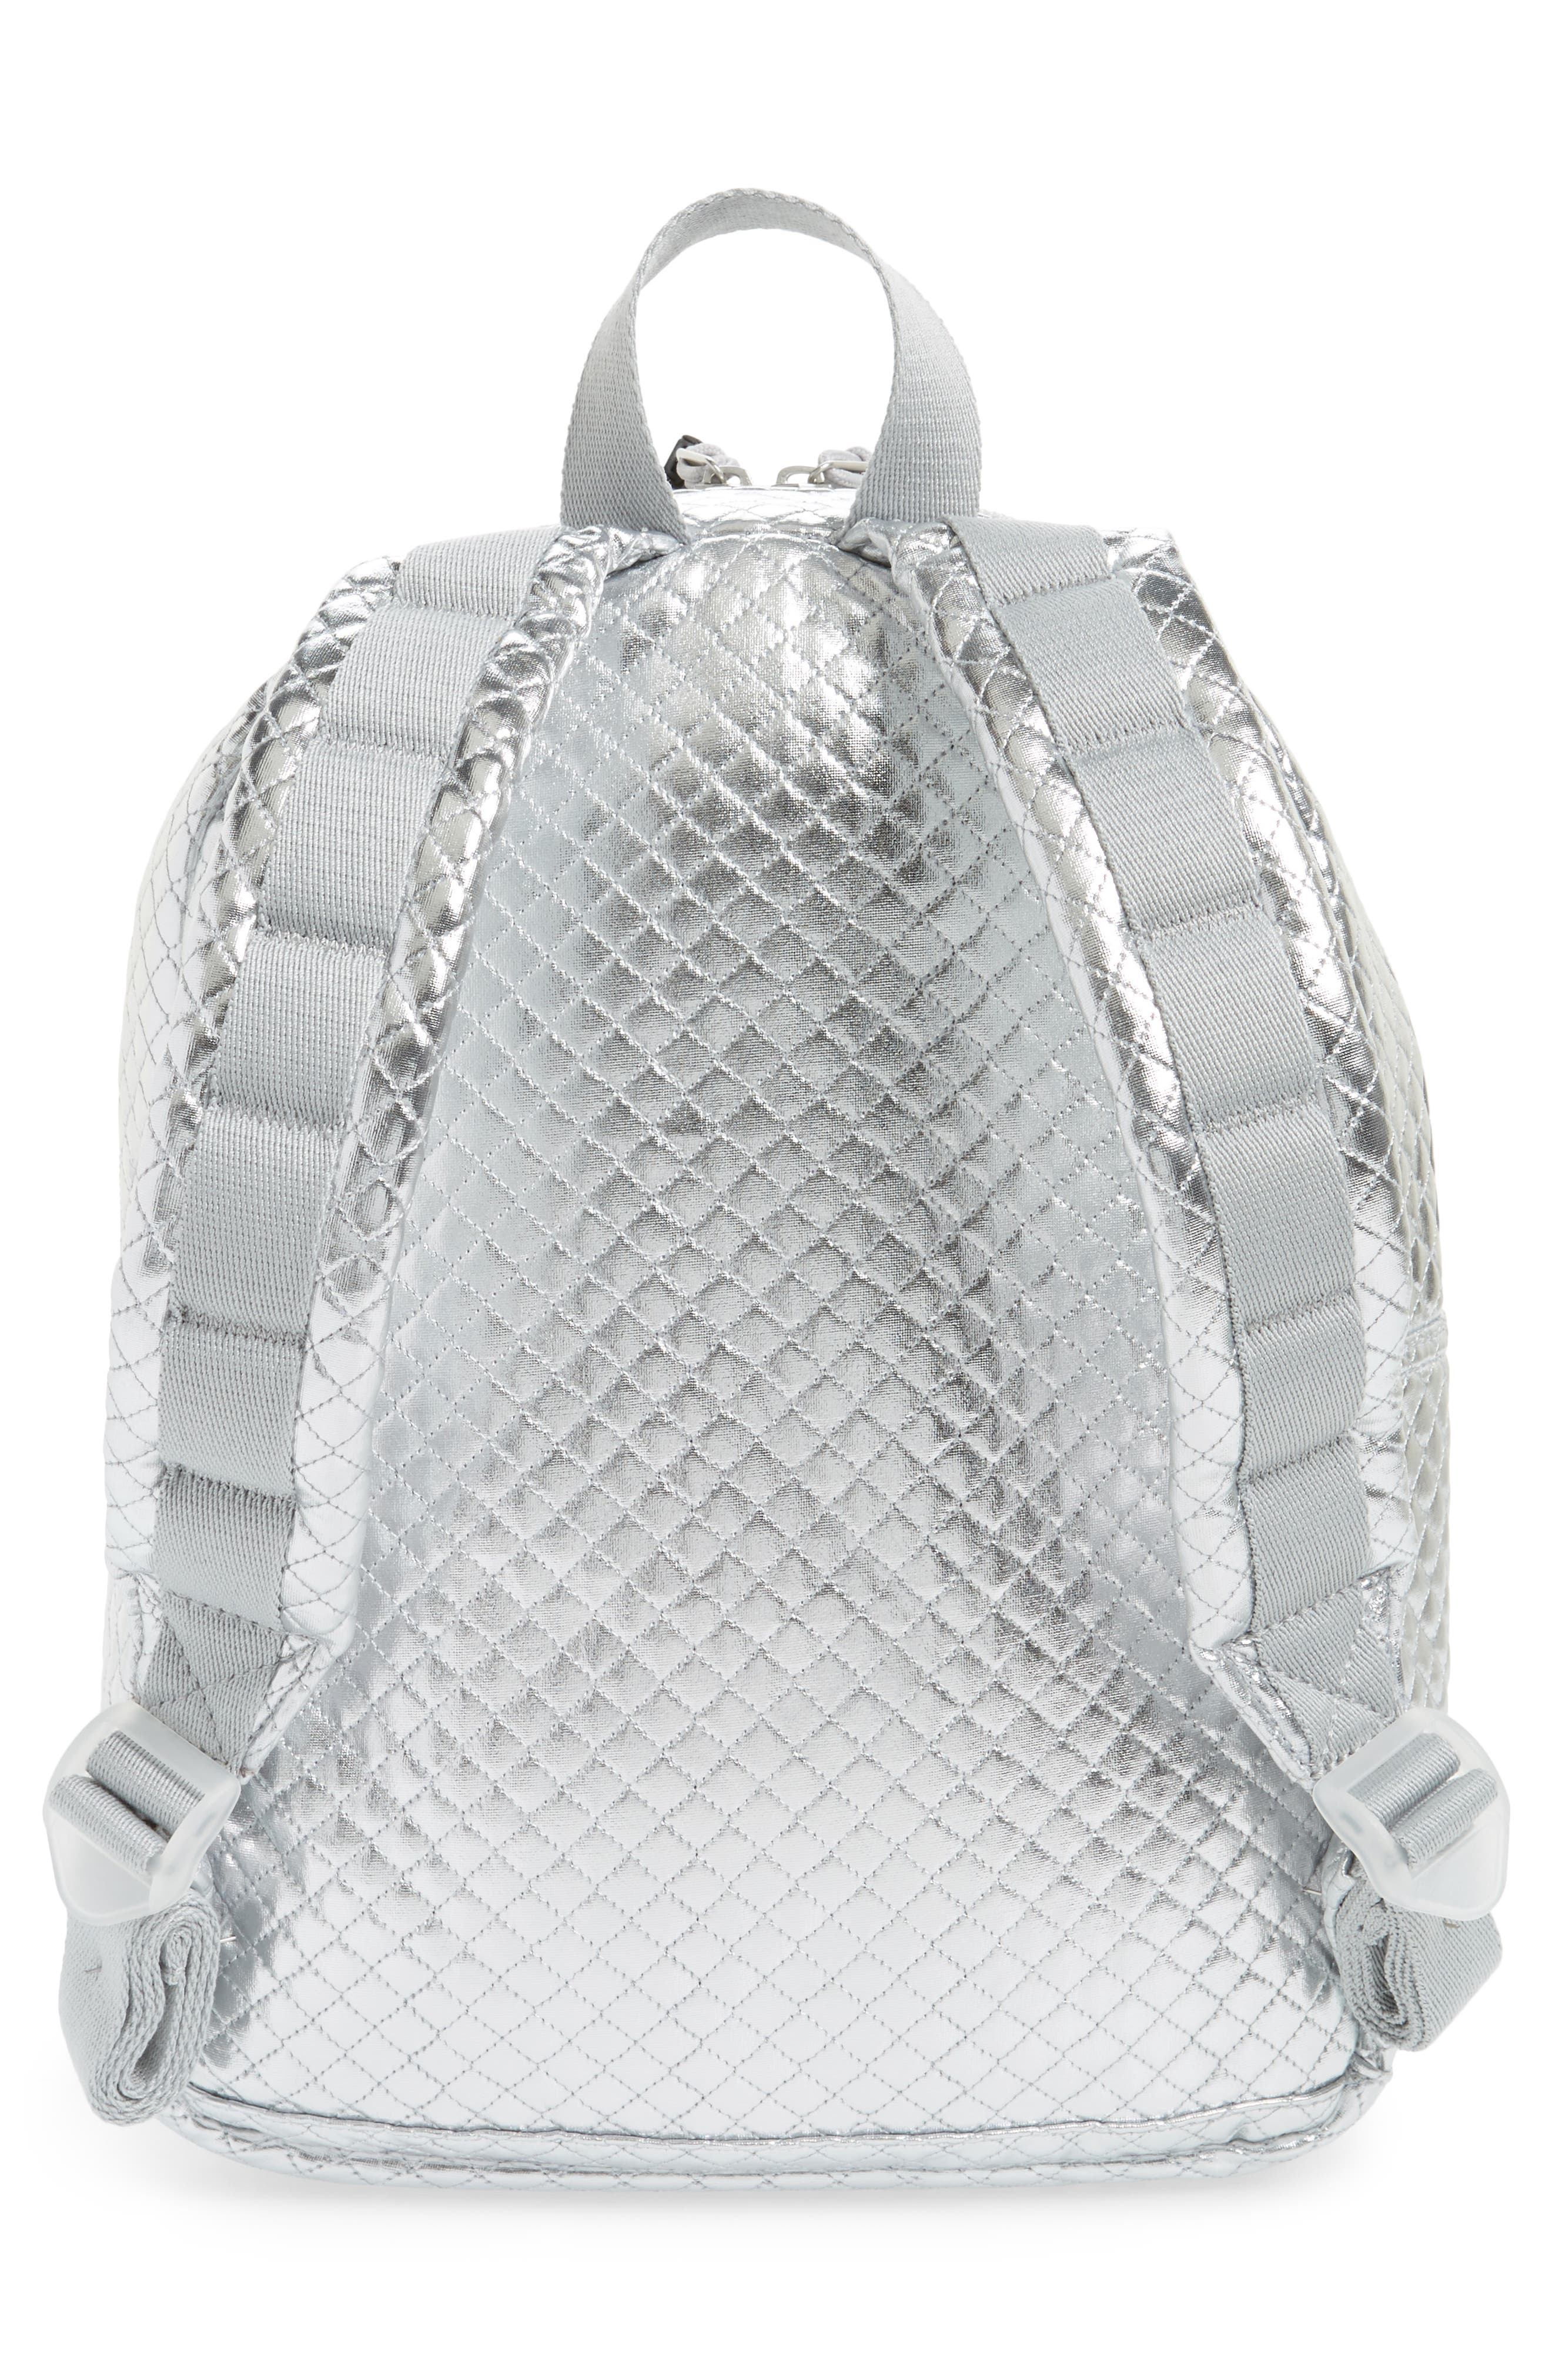 Flatbush Mini Kane Backpack,                             Alternate thumbnail 3, color,                             Silver Quilted